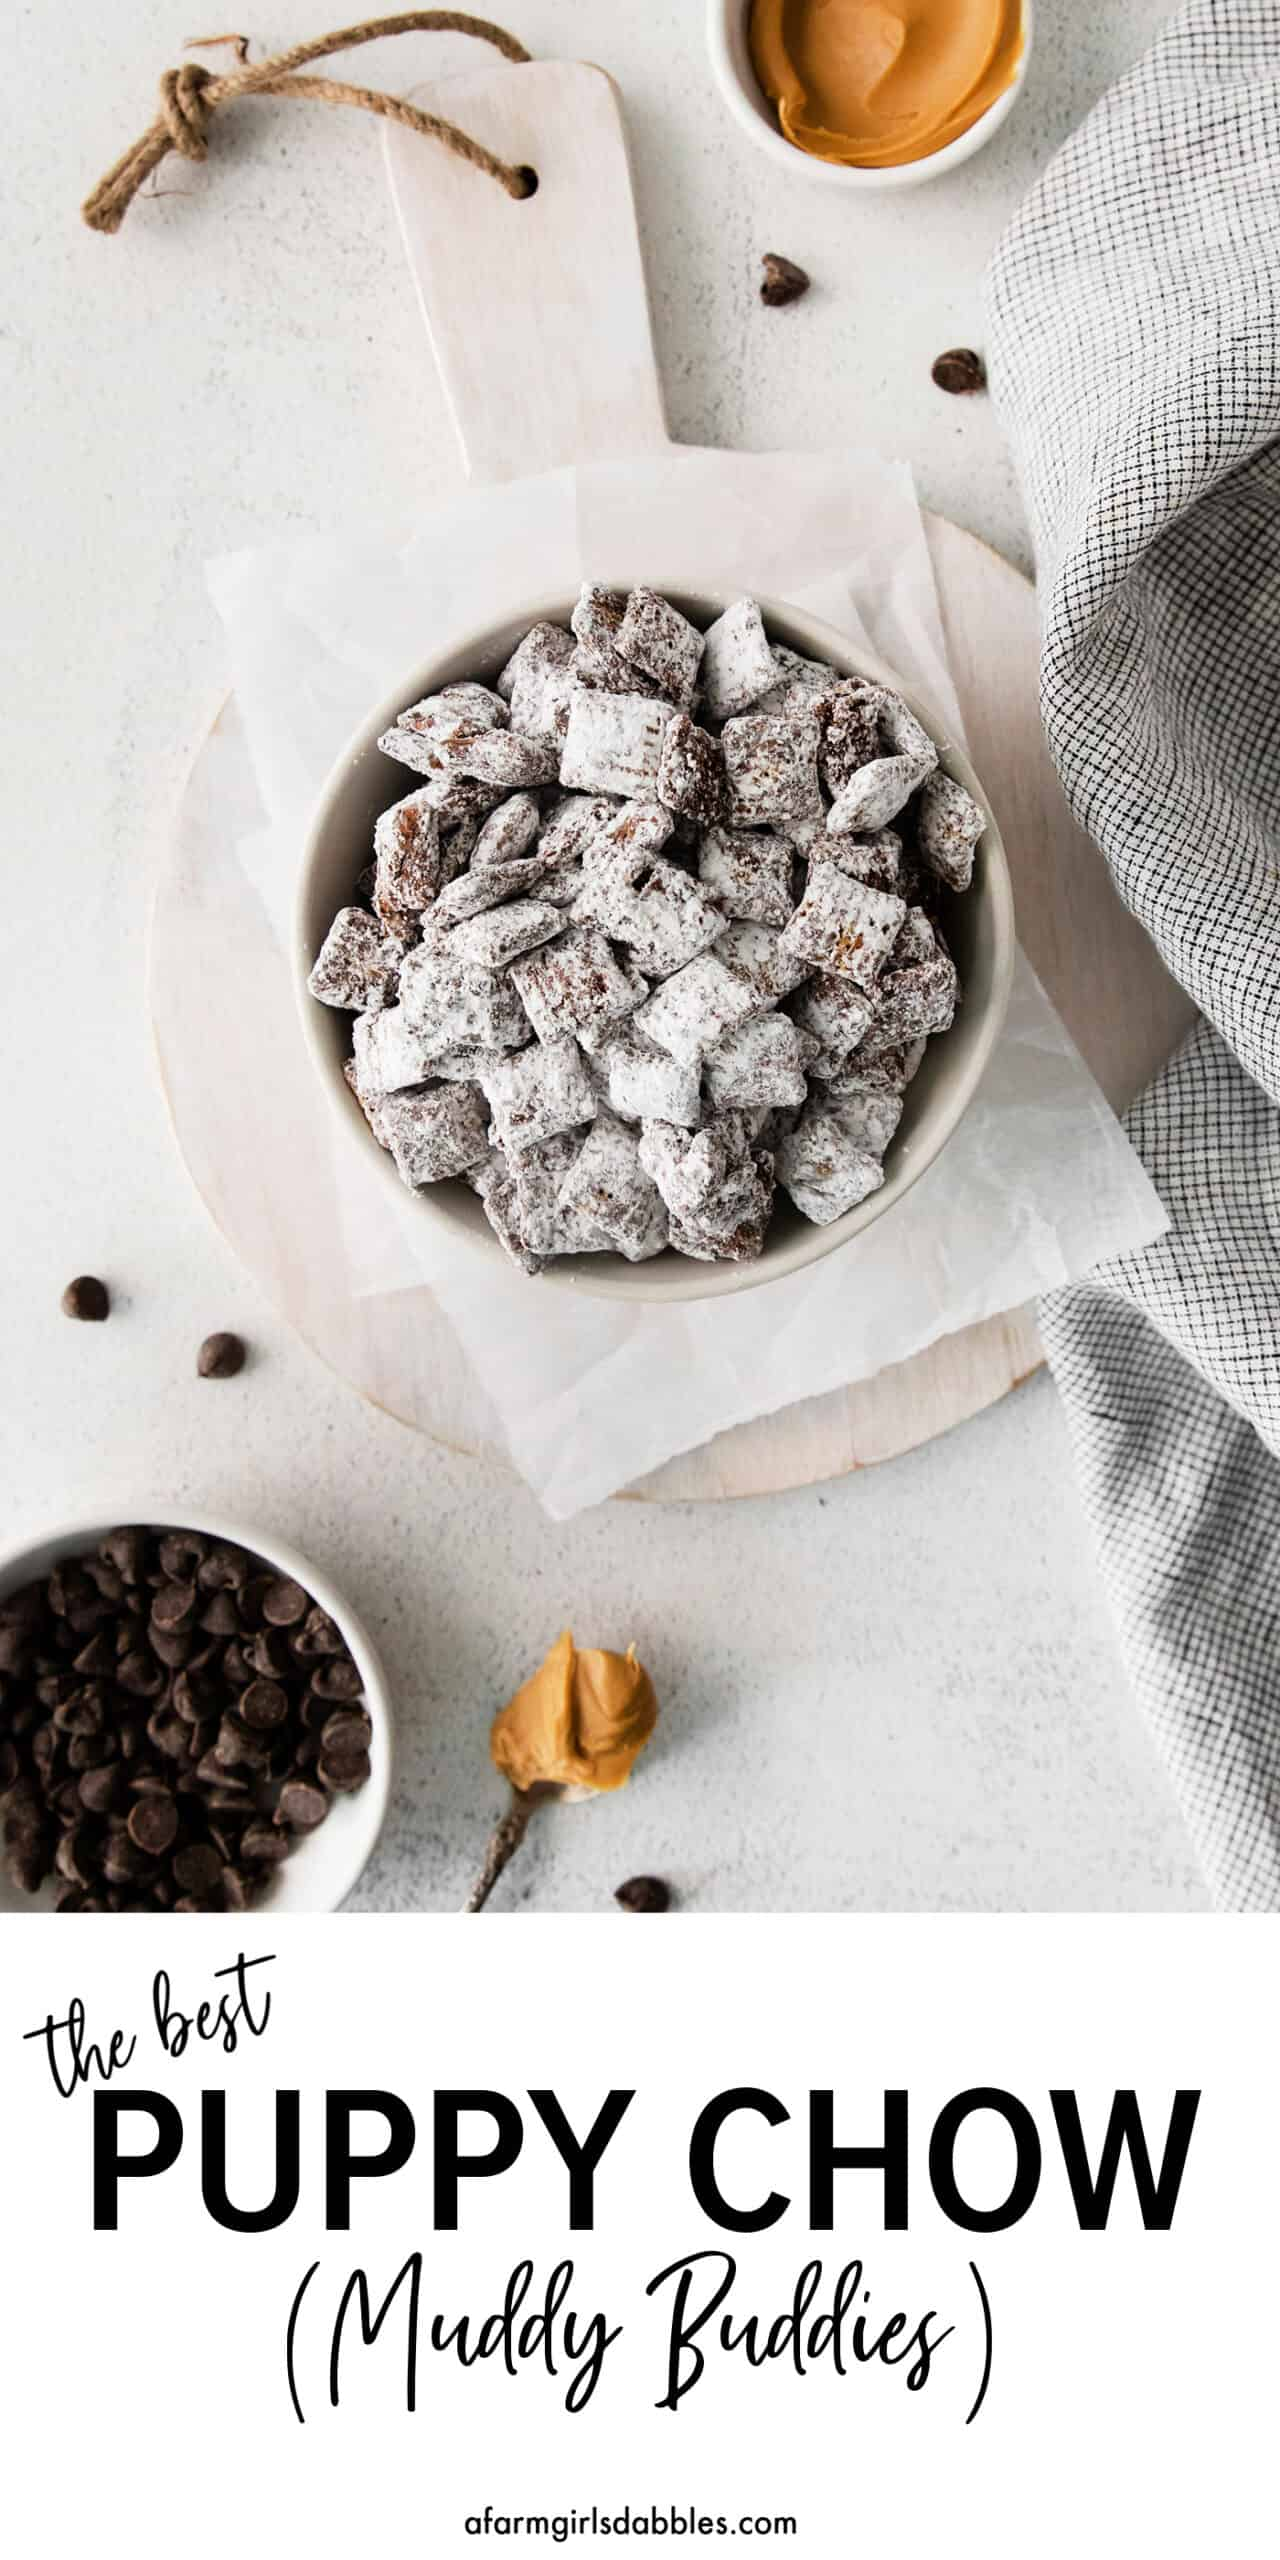 Pinterest image for the best Puppy Chow (Muddy Buddies) recipe